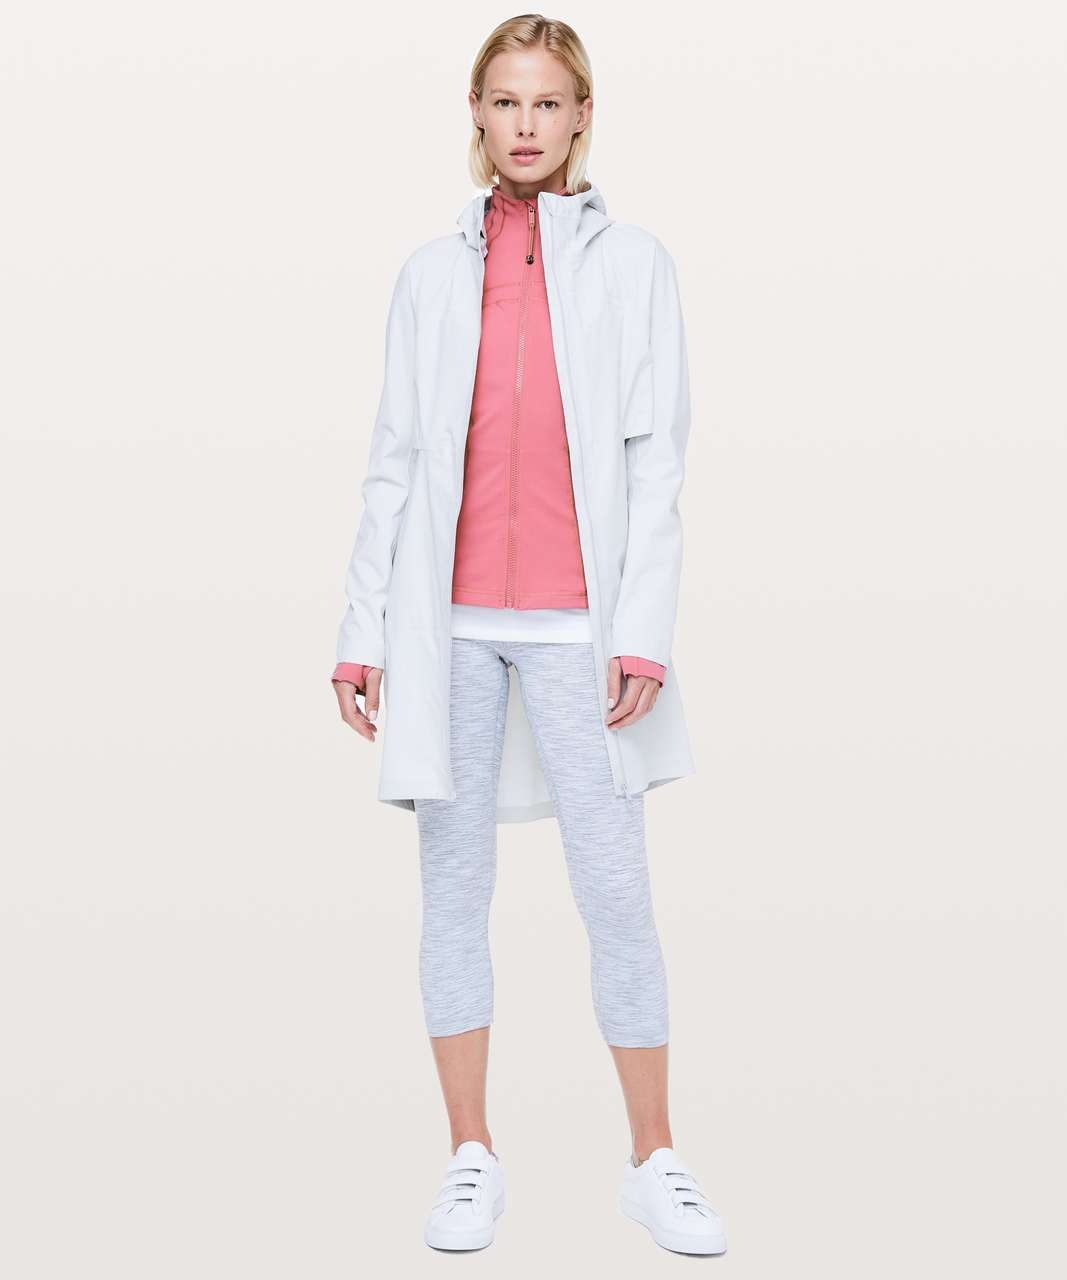 Lululemon Define Jacket - Cherry Tint